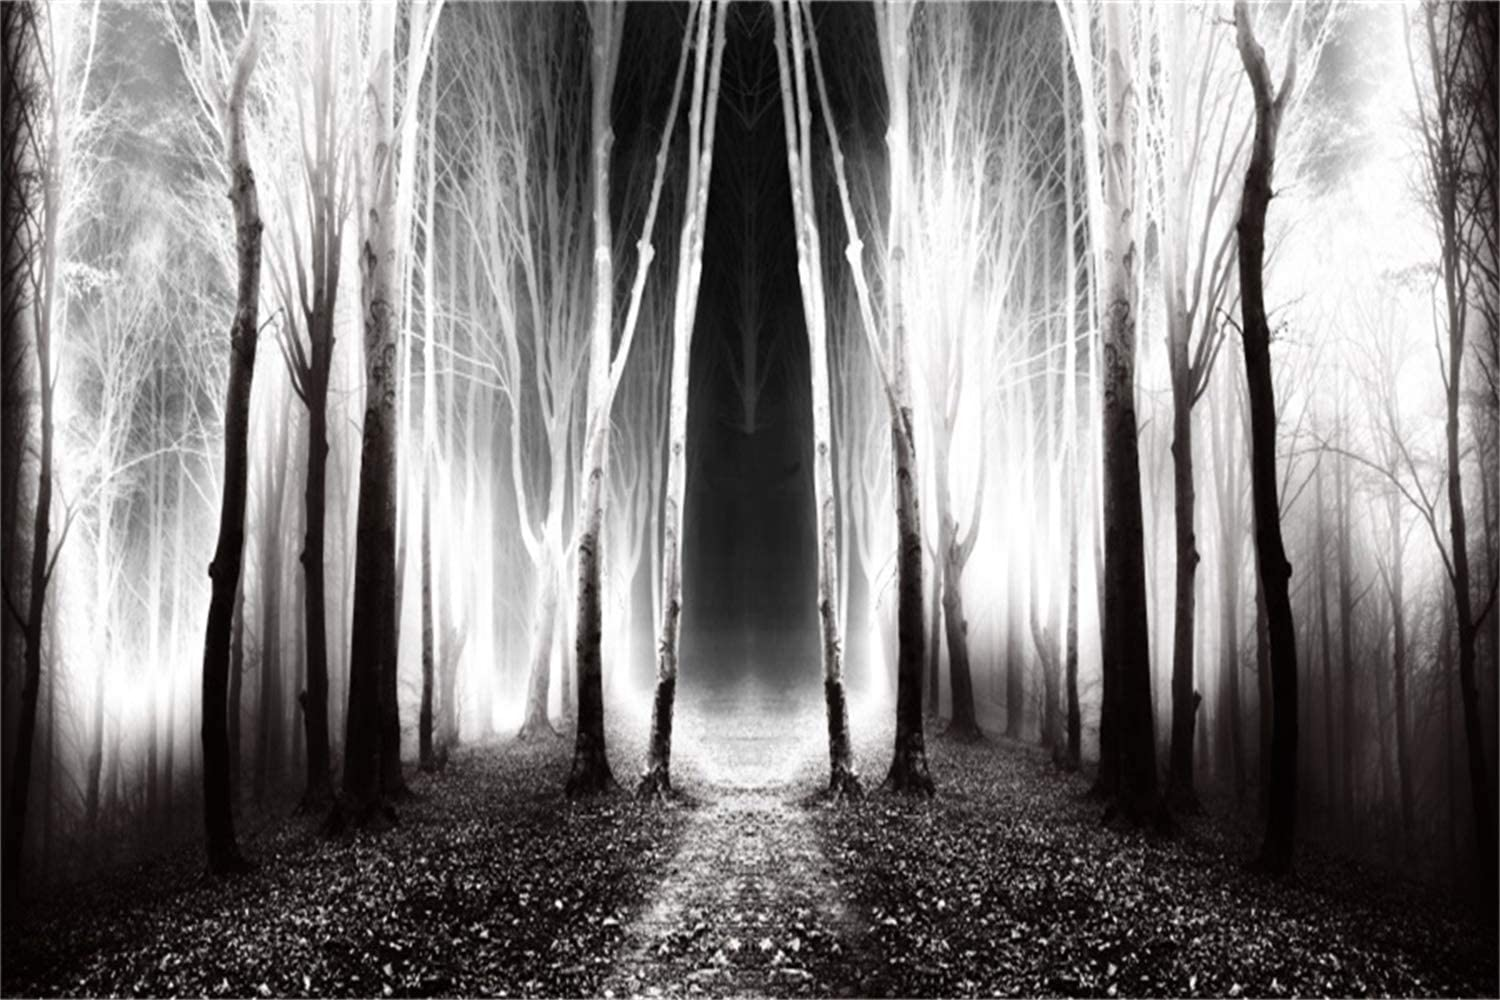 Laeacco 7x5ft Halloween Theme Backdrop Vinyl Foggy Ghastly Cemetery Deserted Haunted Villa Gloomy Cloudy Sky Decayed Trees Photography Backgroud Child Baby Portrait Shoot Trick Or Treat Party Banner